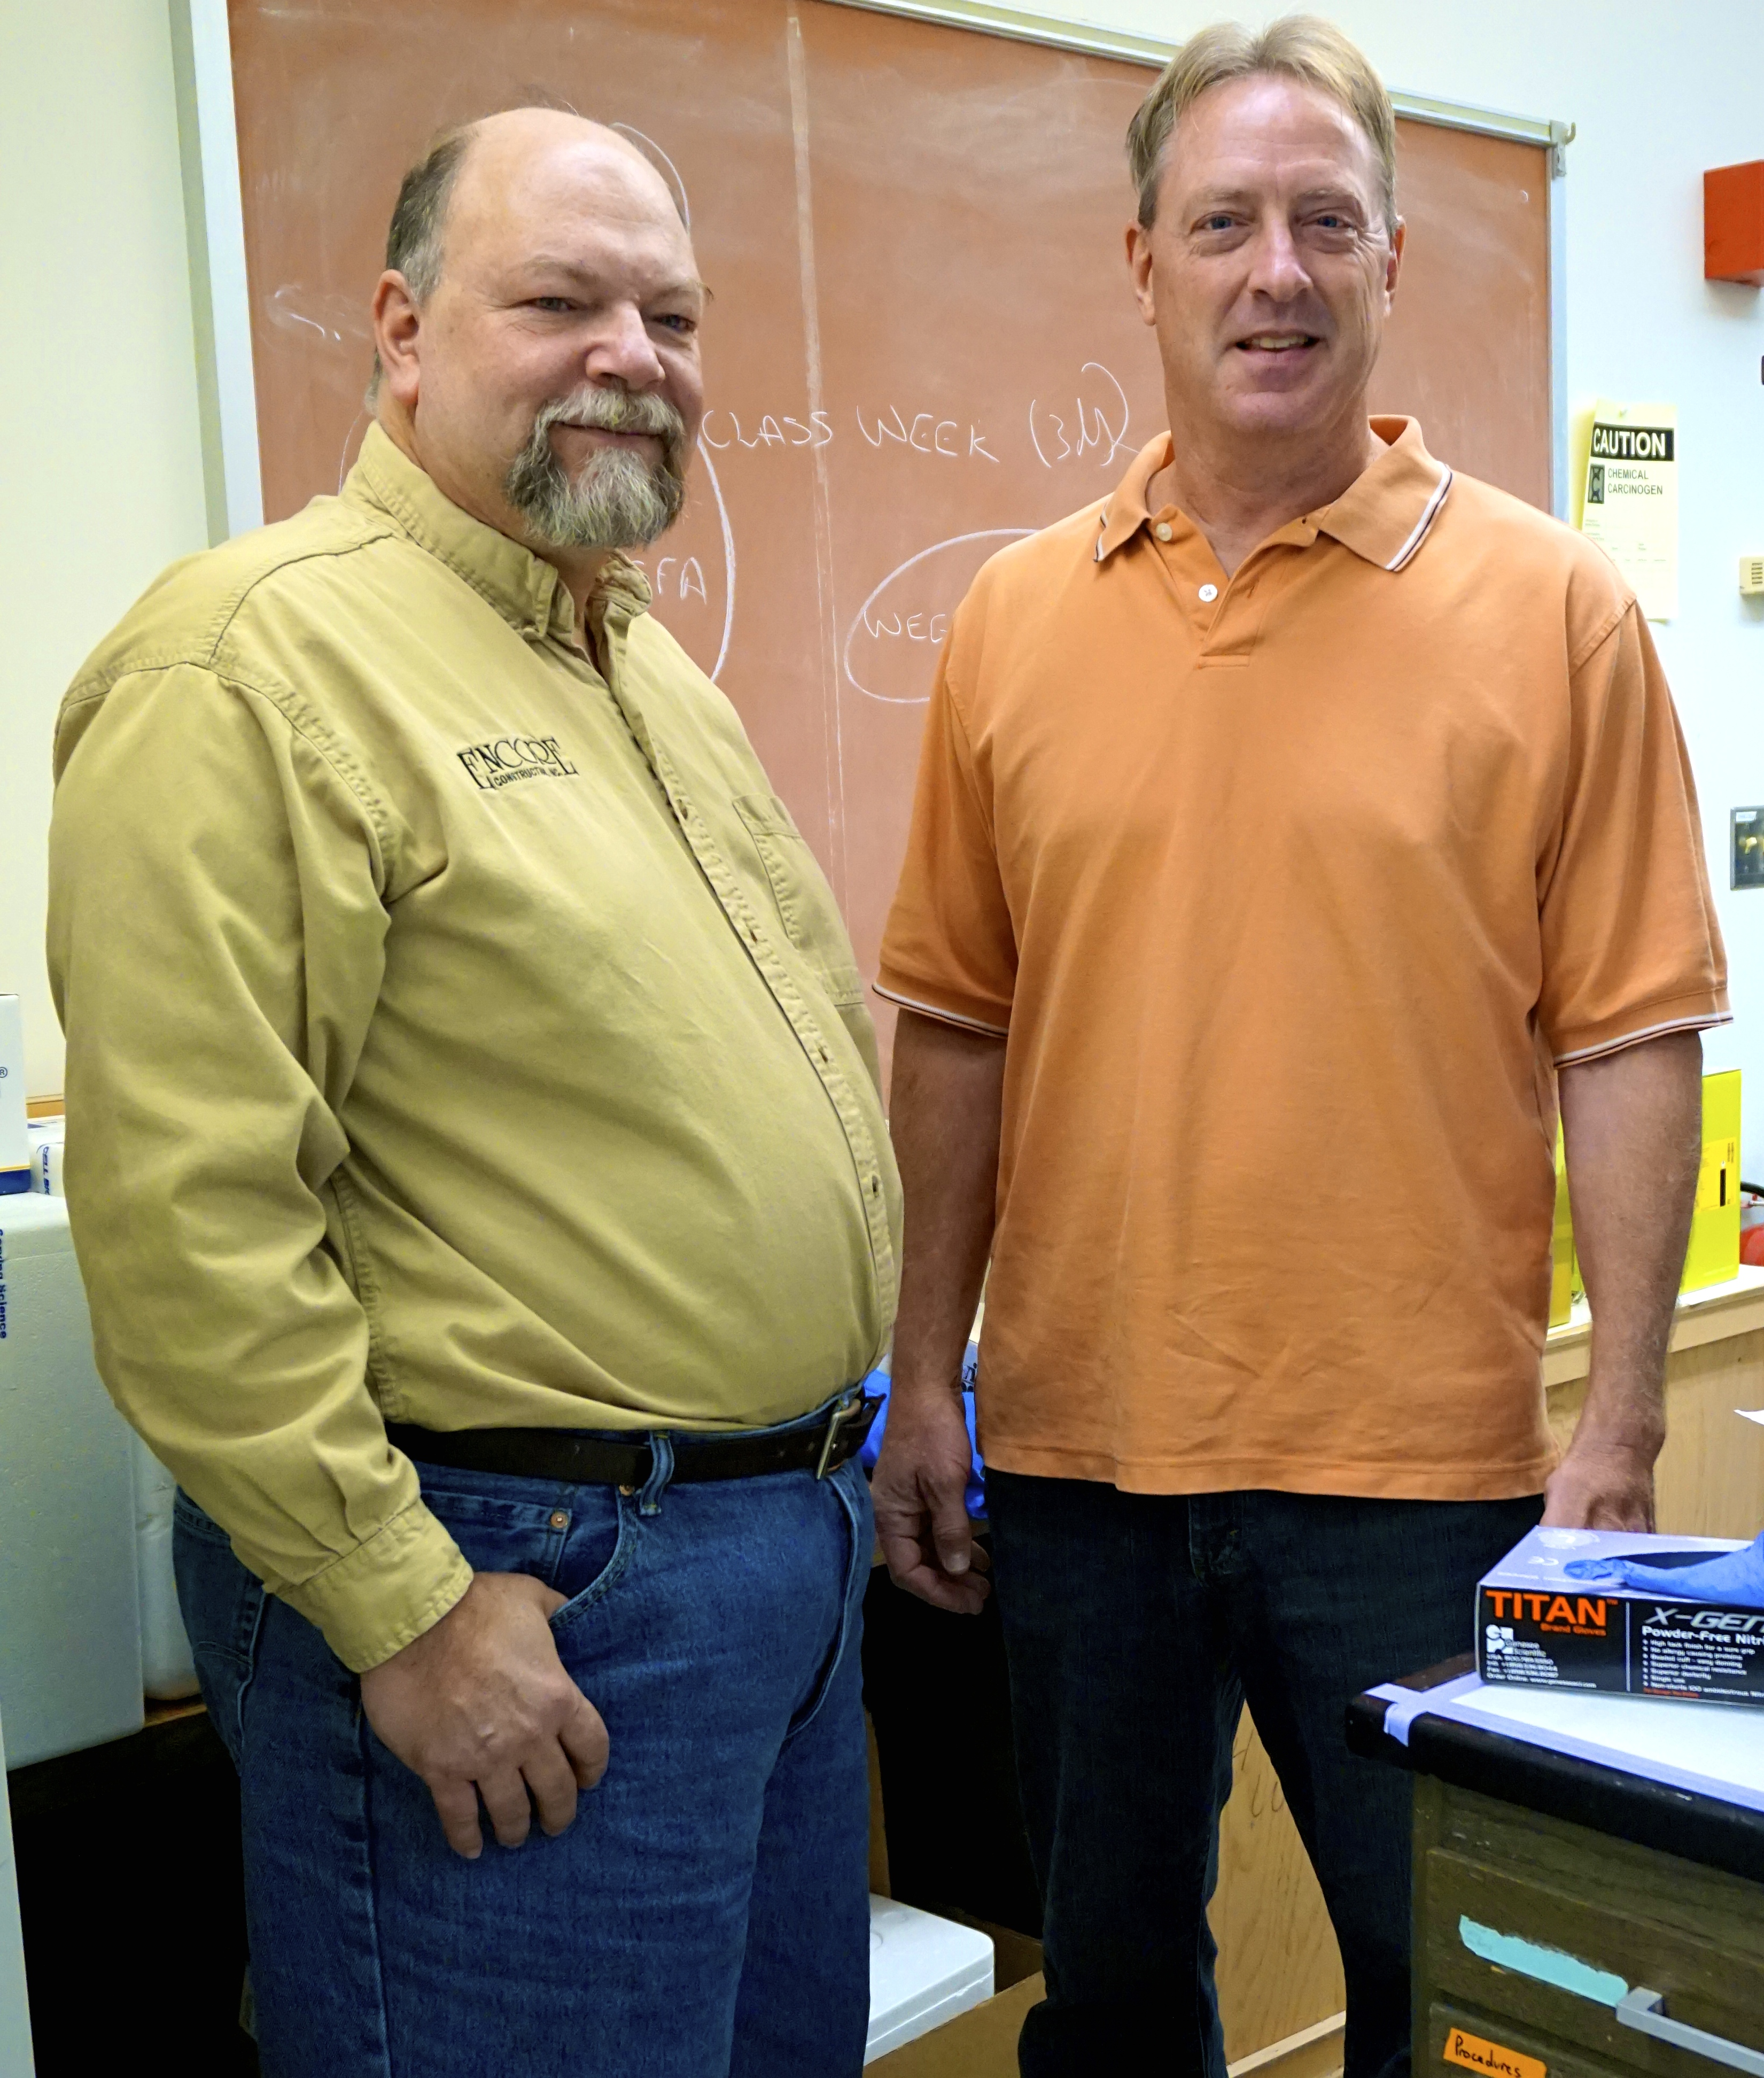 (Left to right) Dr. Lou Armentano and Dr. Kent Weigel